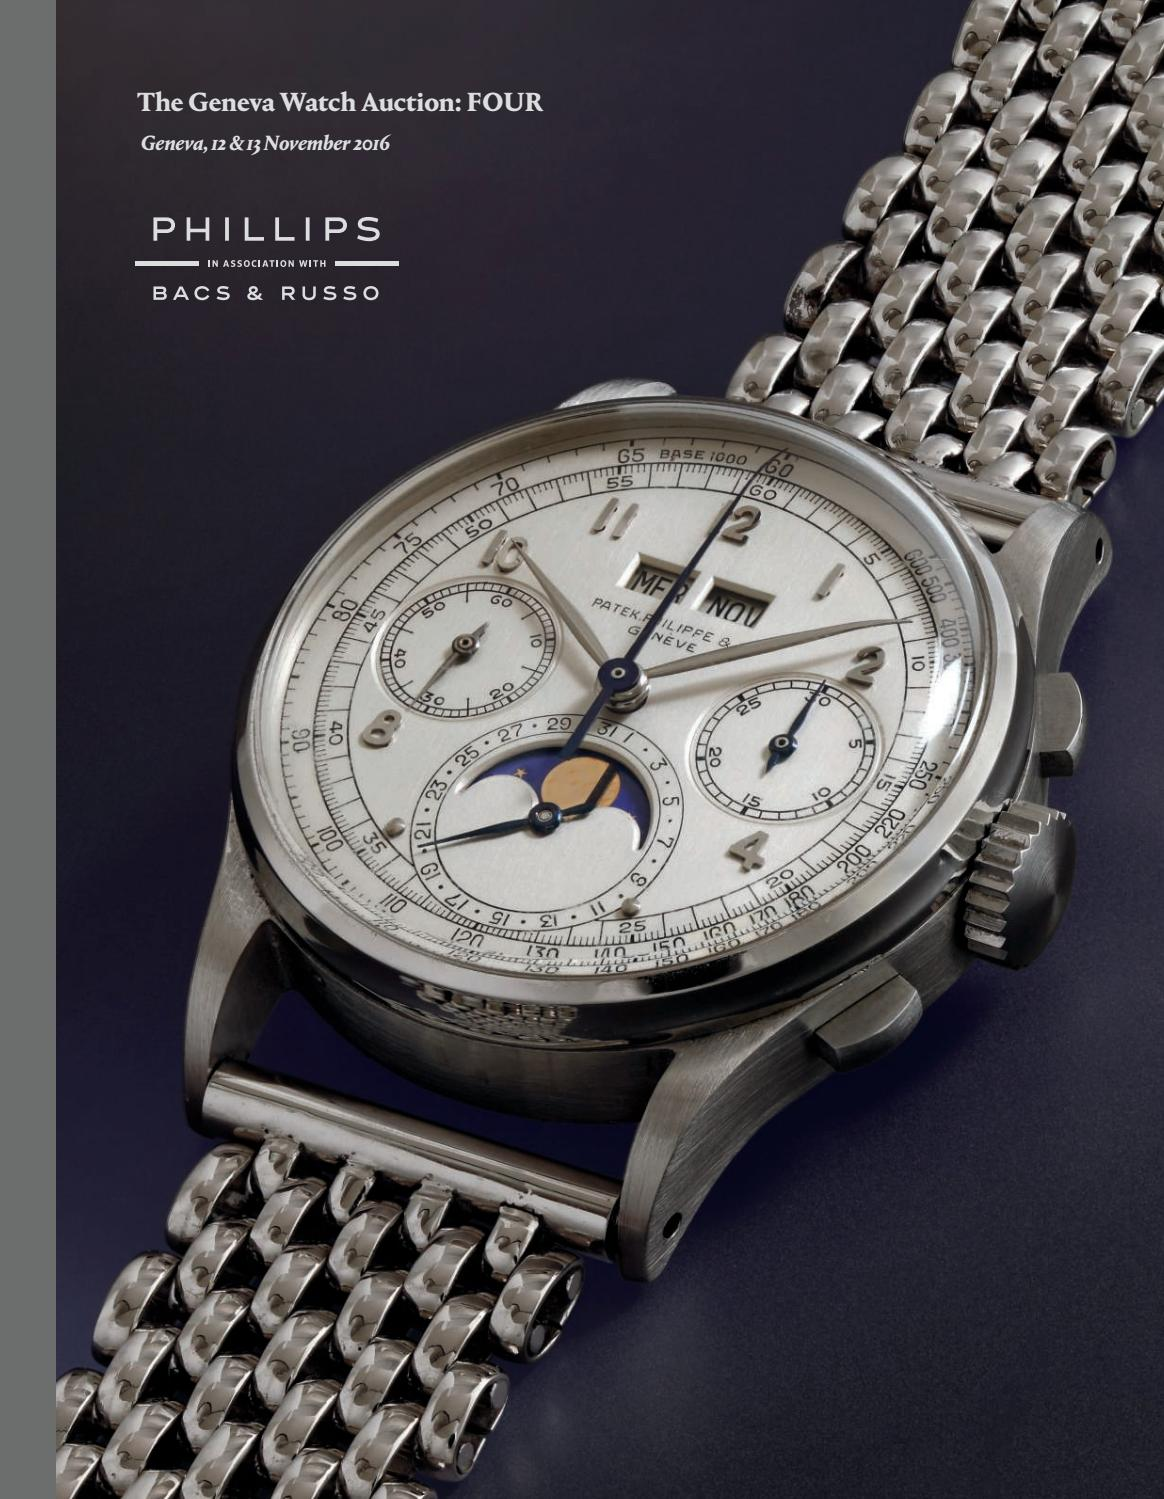 683de10ecf5 THE GENEVA WATCH AUCTION  FOUR  Catalogue  by PHILLIPS - issuu